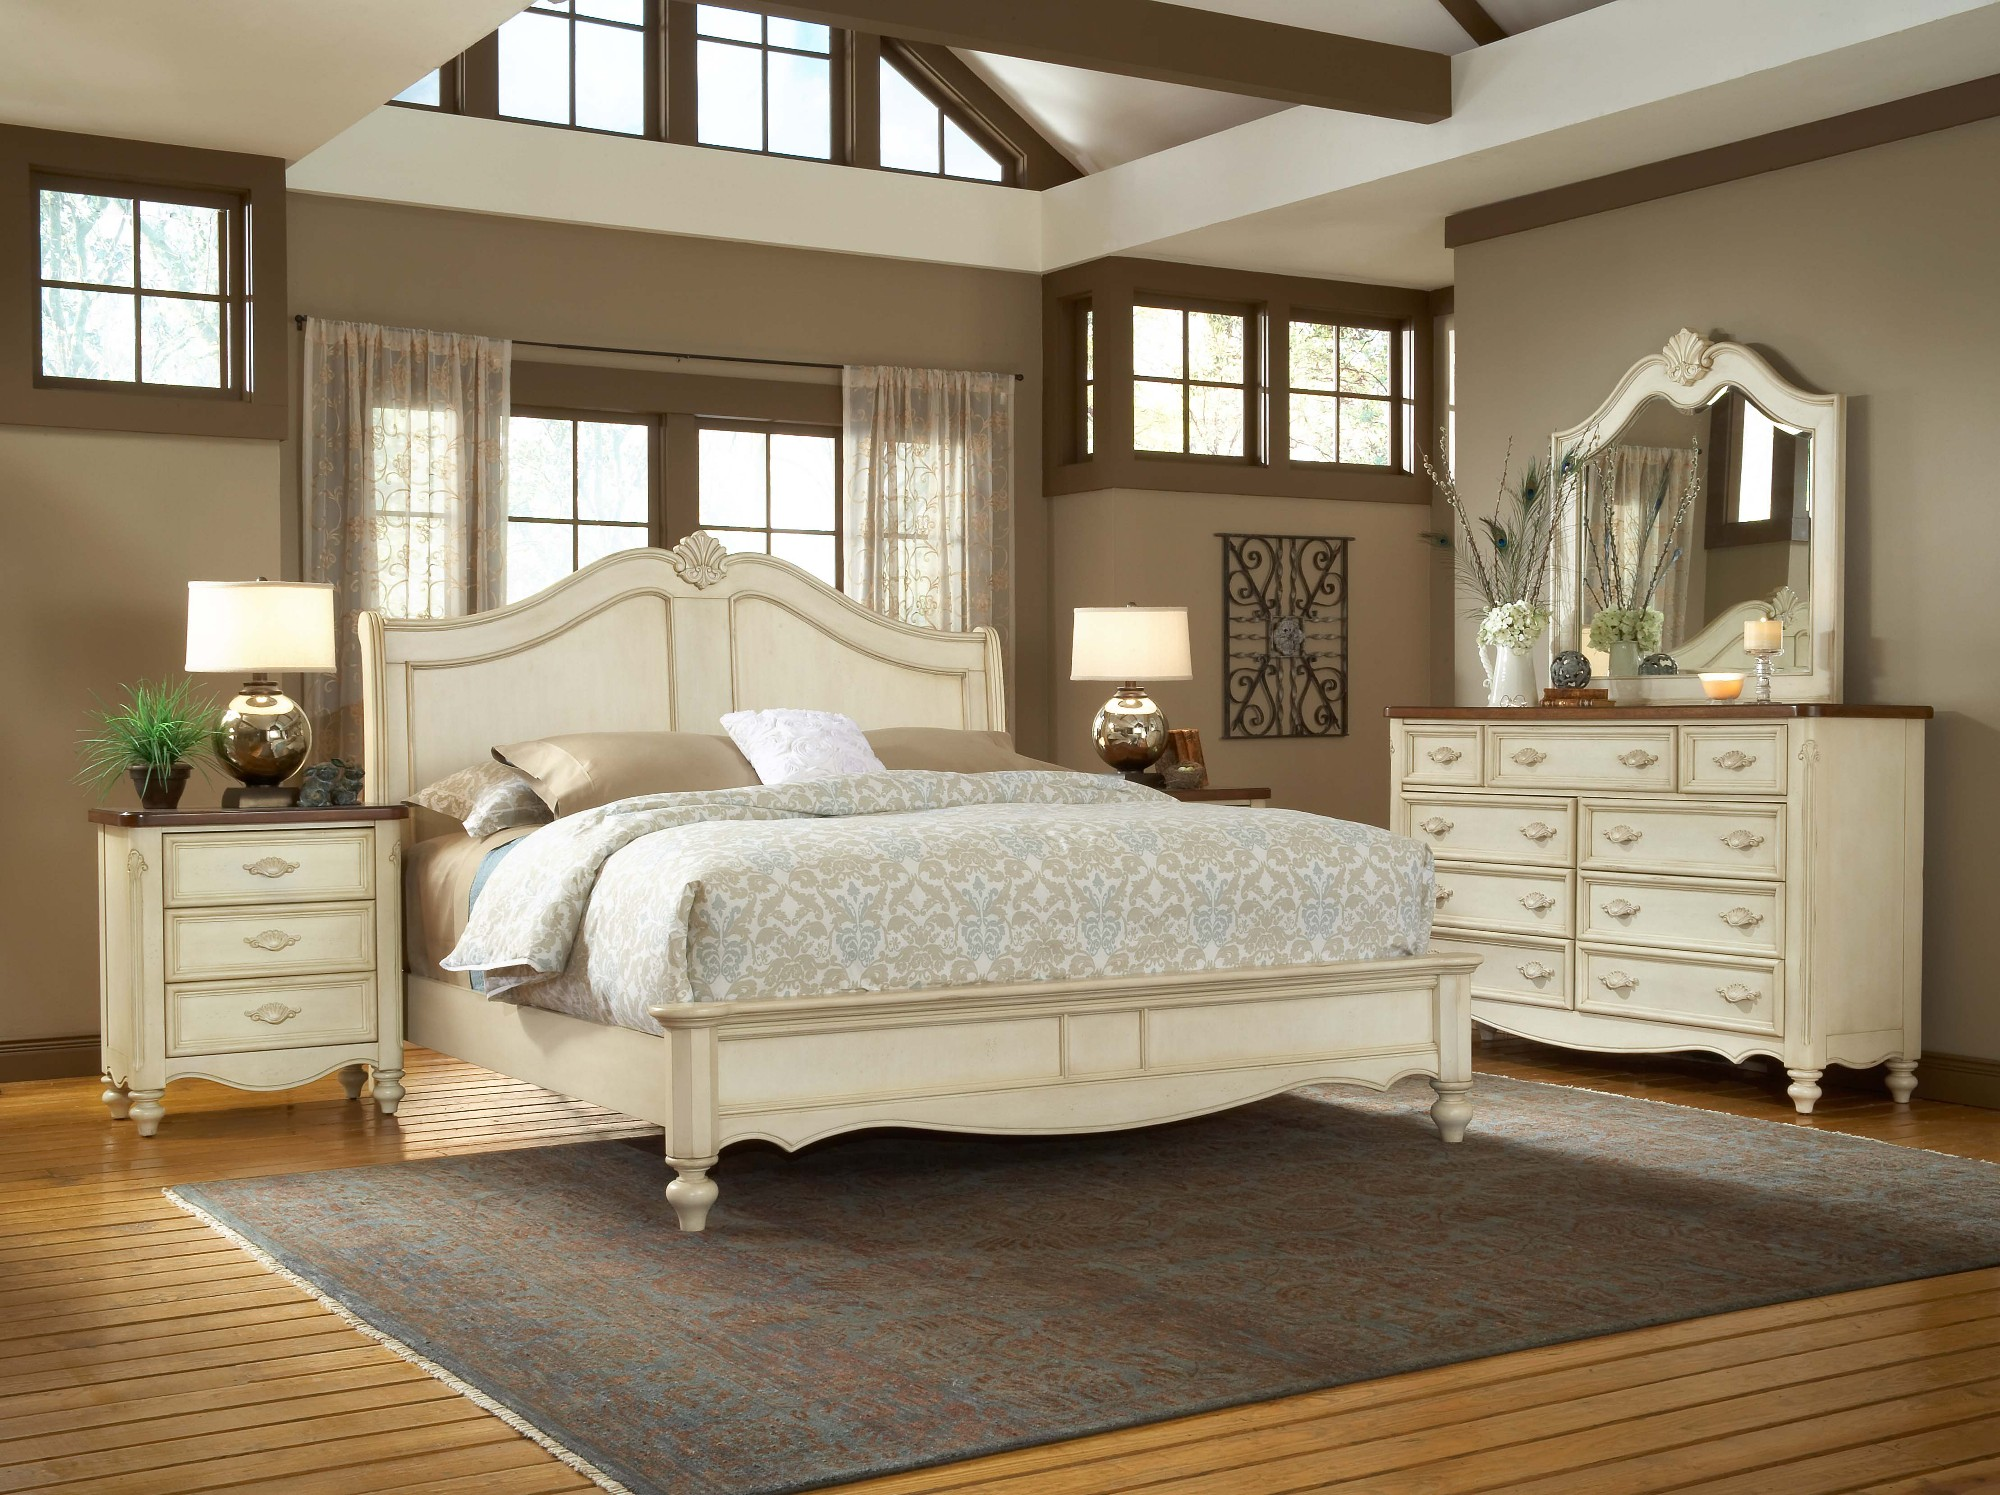 Bedroom Furniture Sets Ikea Bedroom Furniture For The Main Room American Bedroom Designs Design American